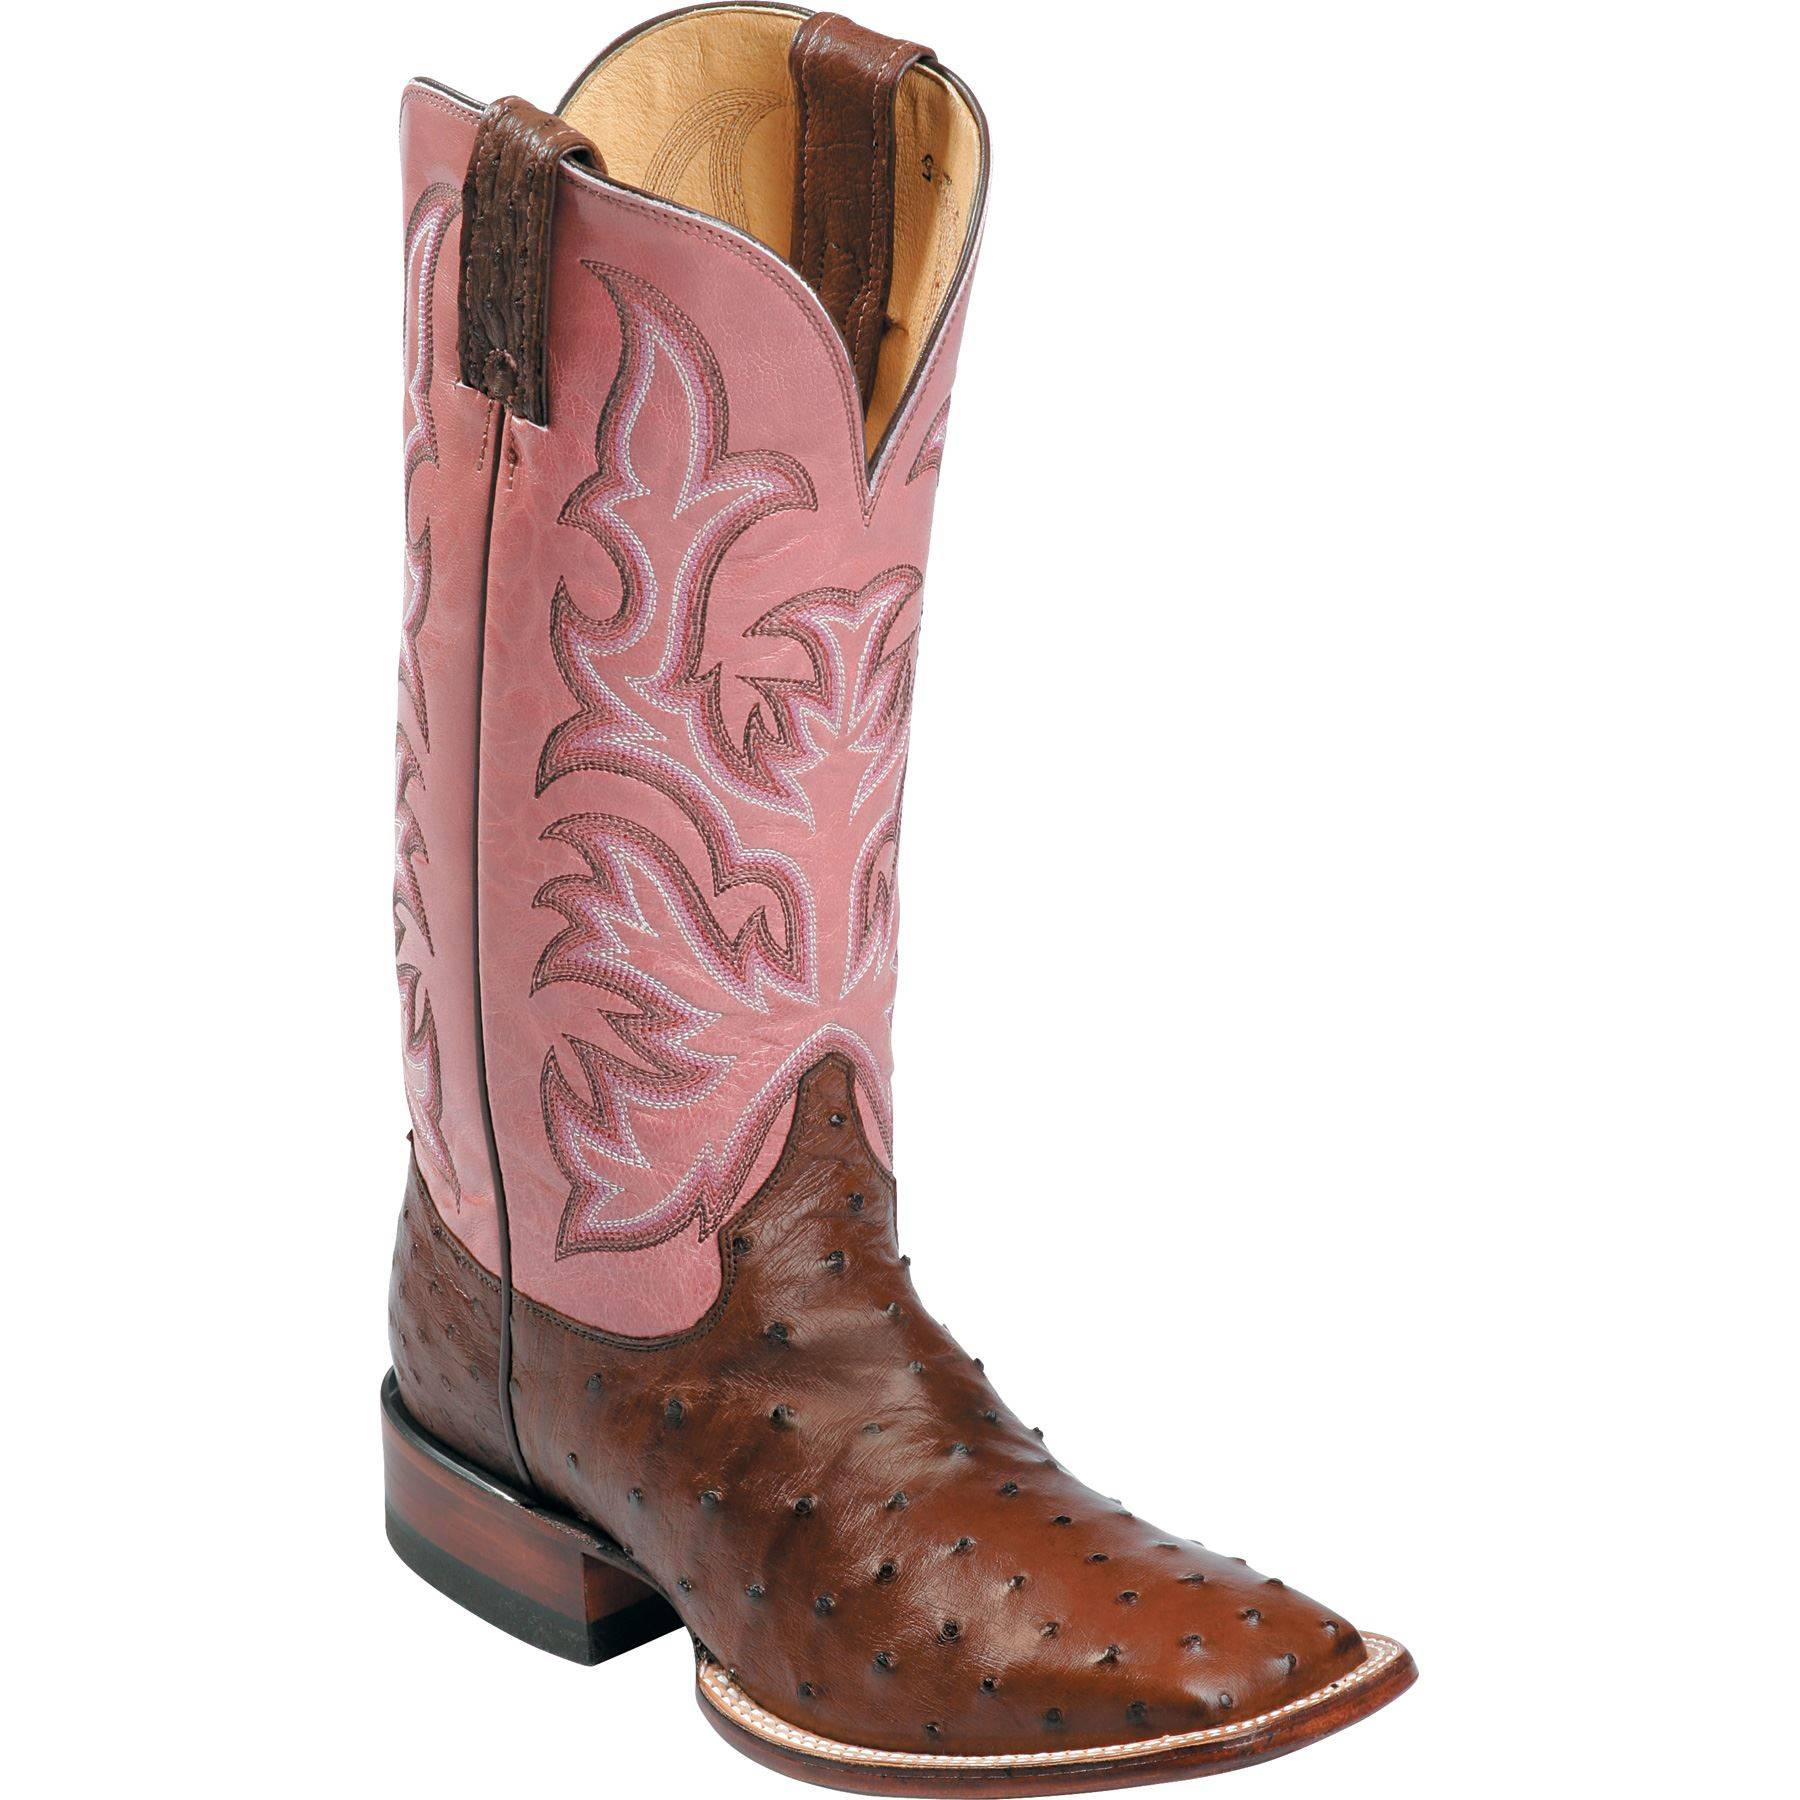 3b6431bc9e2 Justin Ladies Remuda Full Quill Ostrich Boots - Antique Brown/Pink